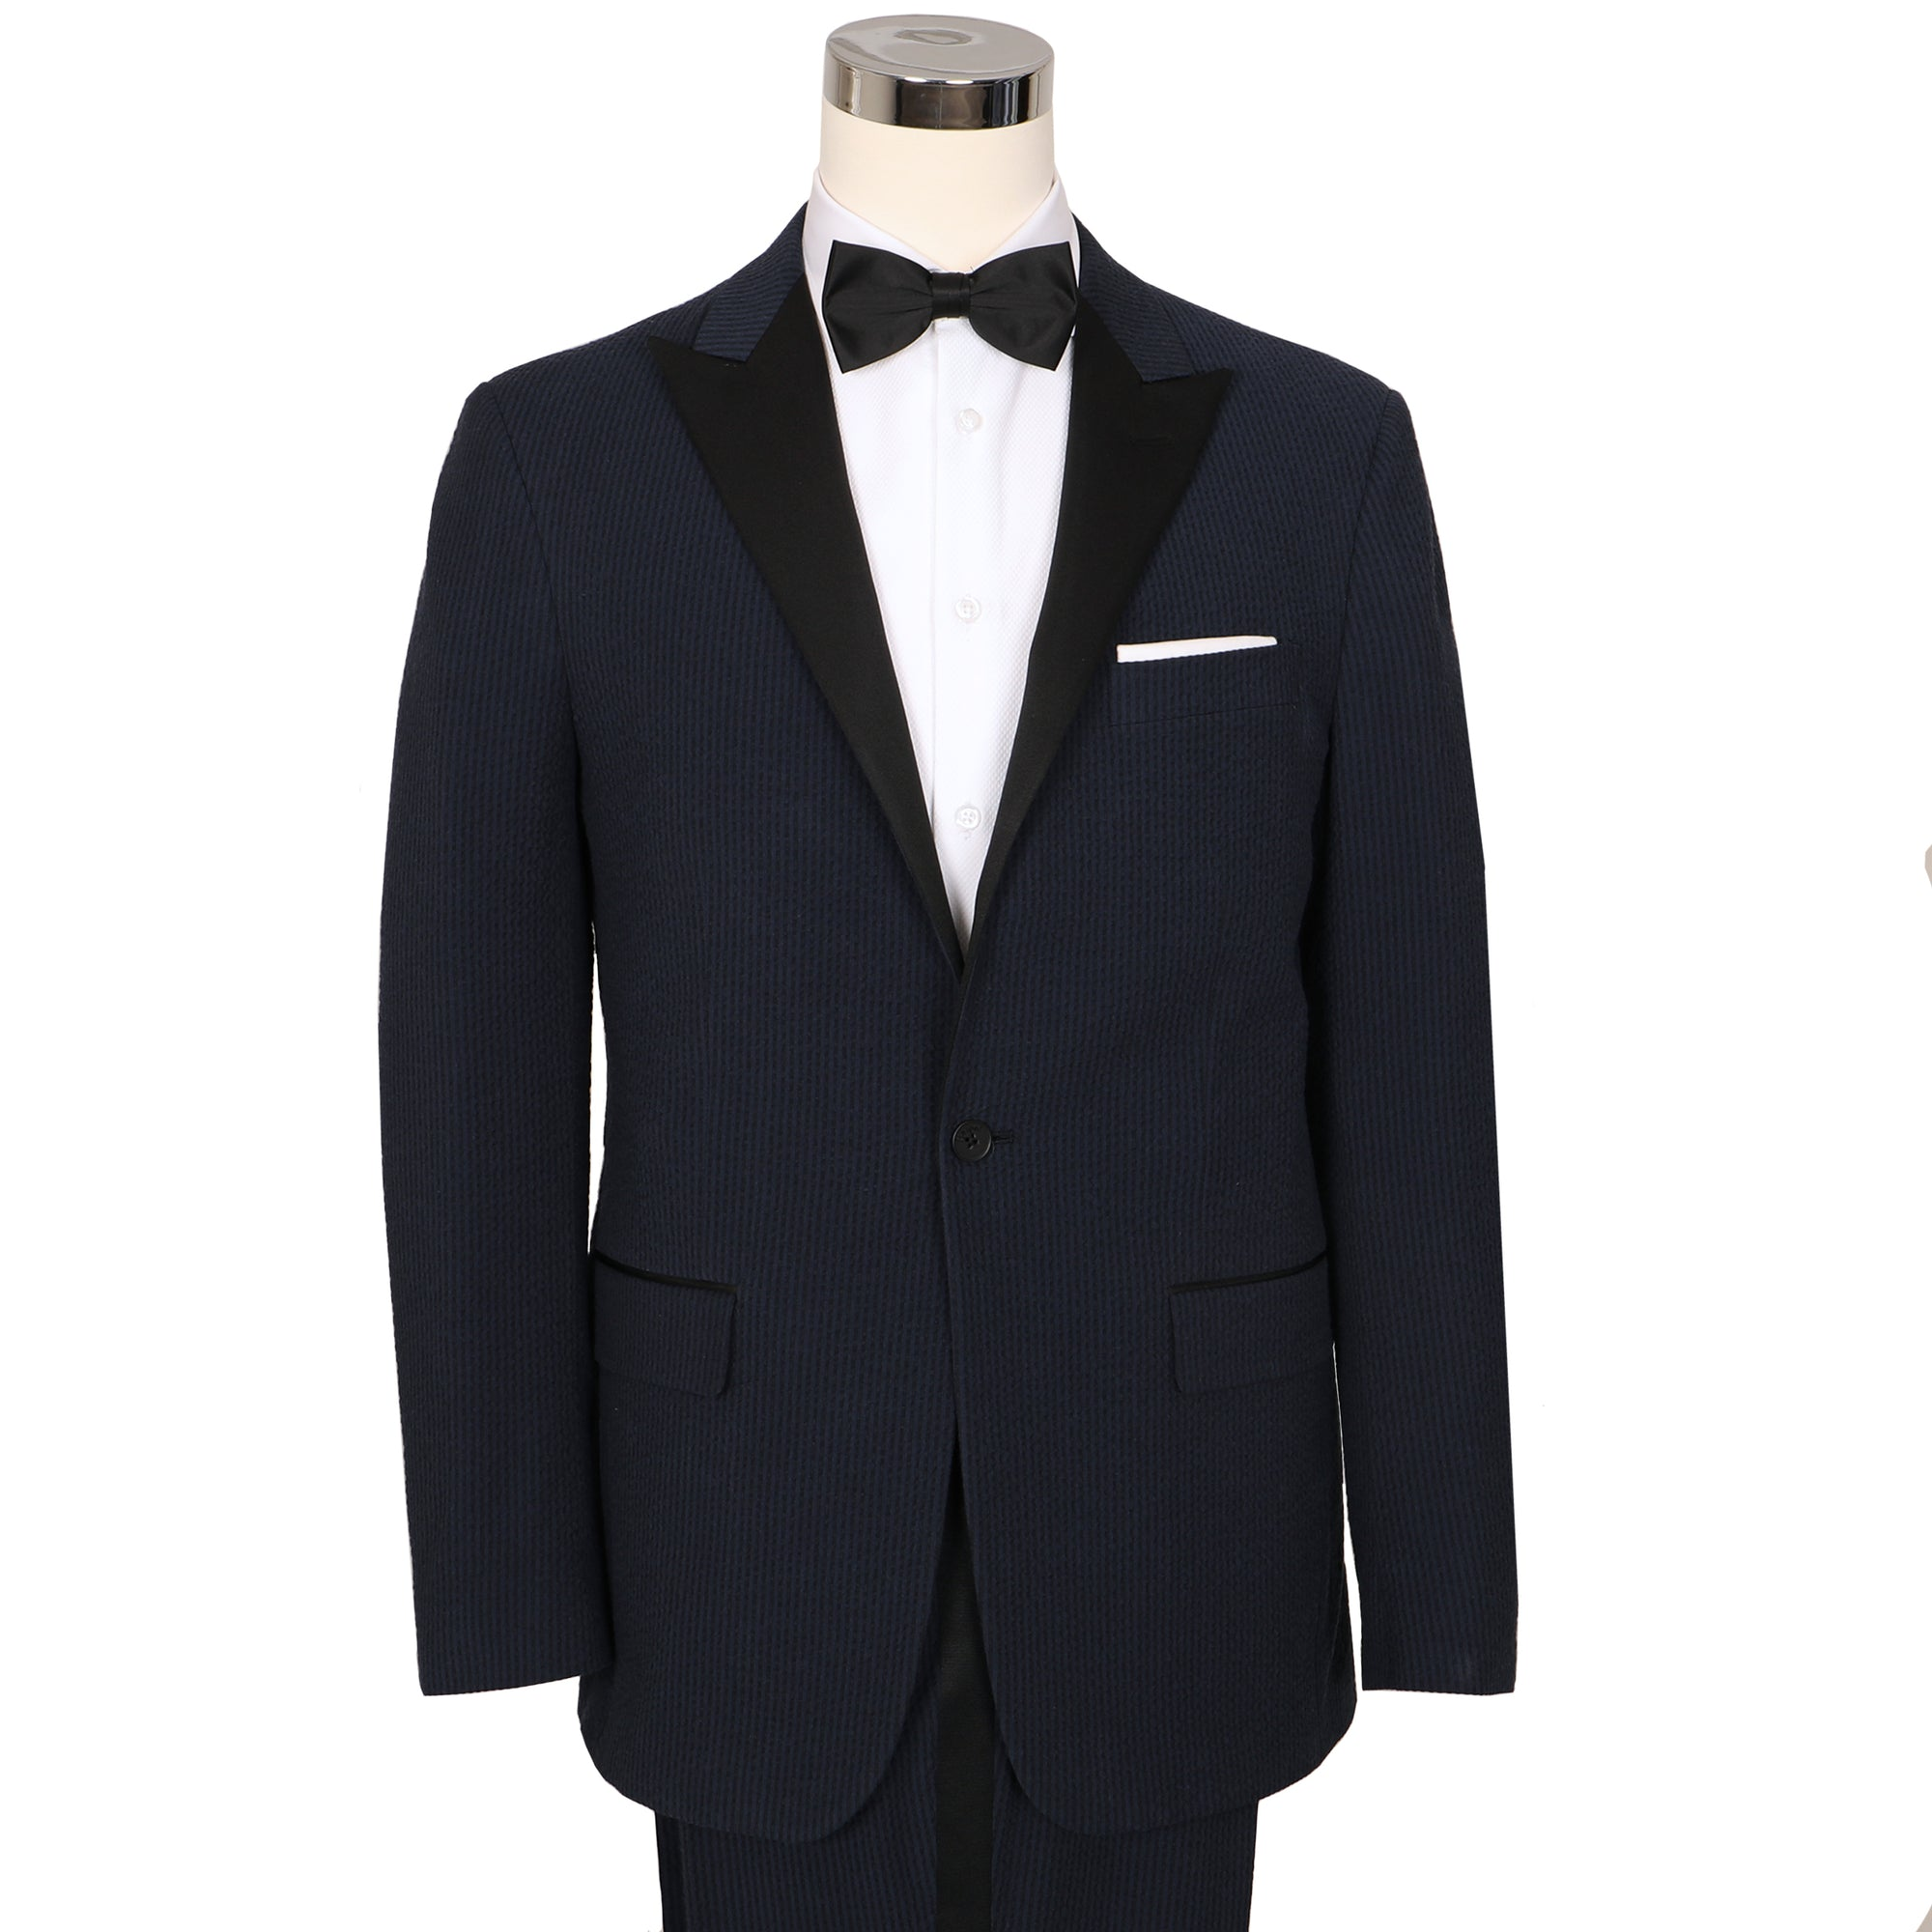 Vieux Carre Navy/Black Seersucker Stretch Tuxedo